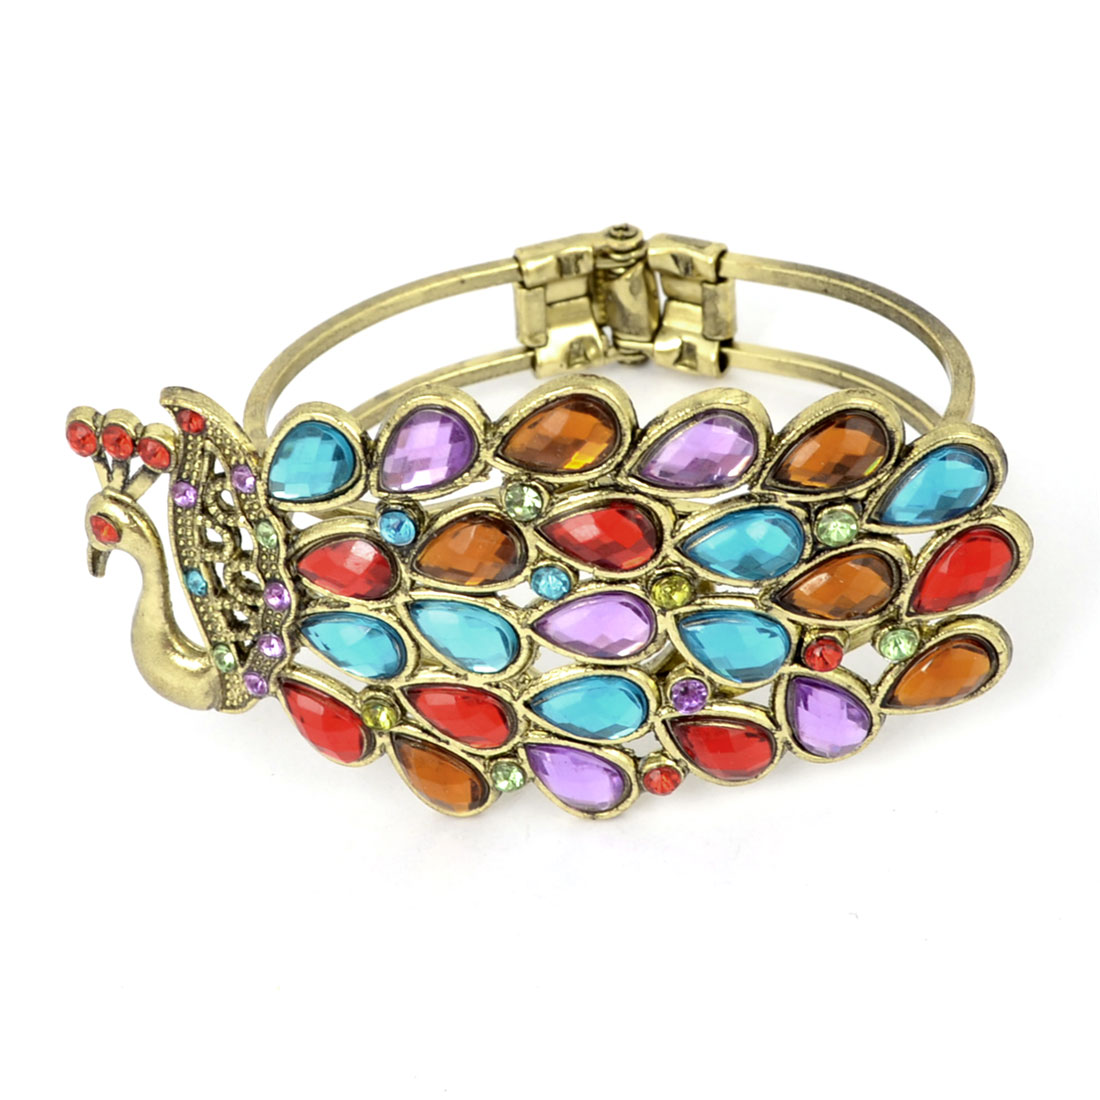 Colorful Rhinestones Inlaid Peacock Bangle Wrist Bracelet Ornament for Ladies